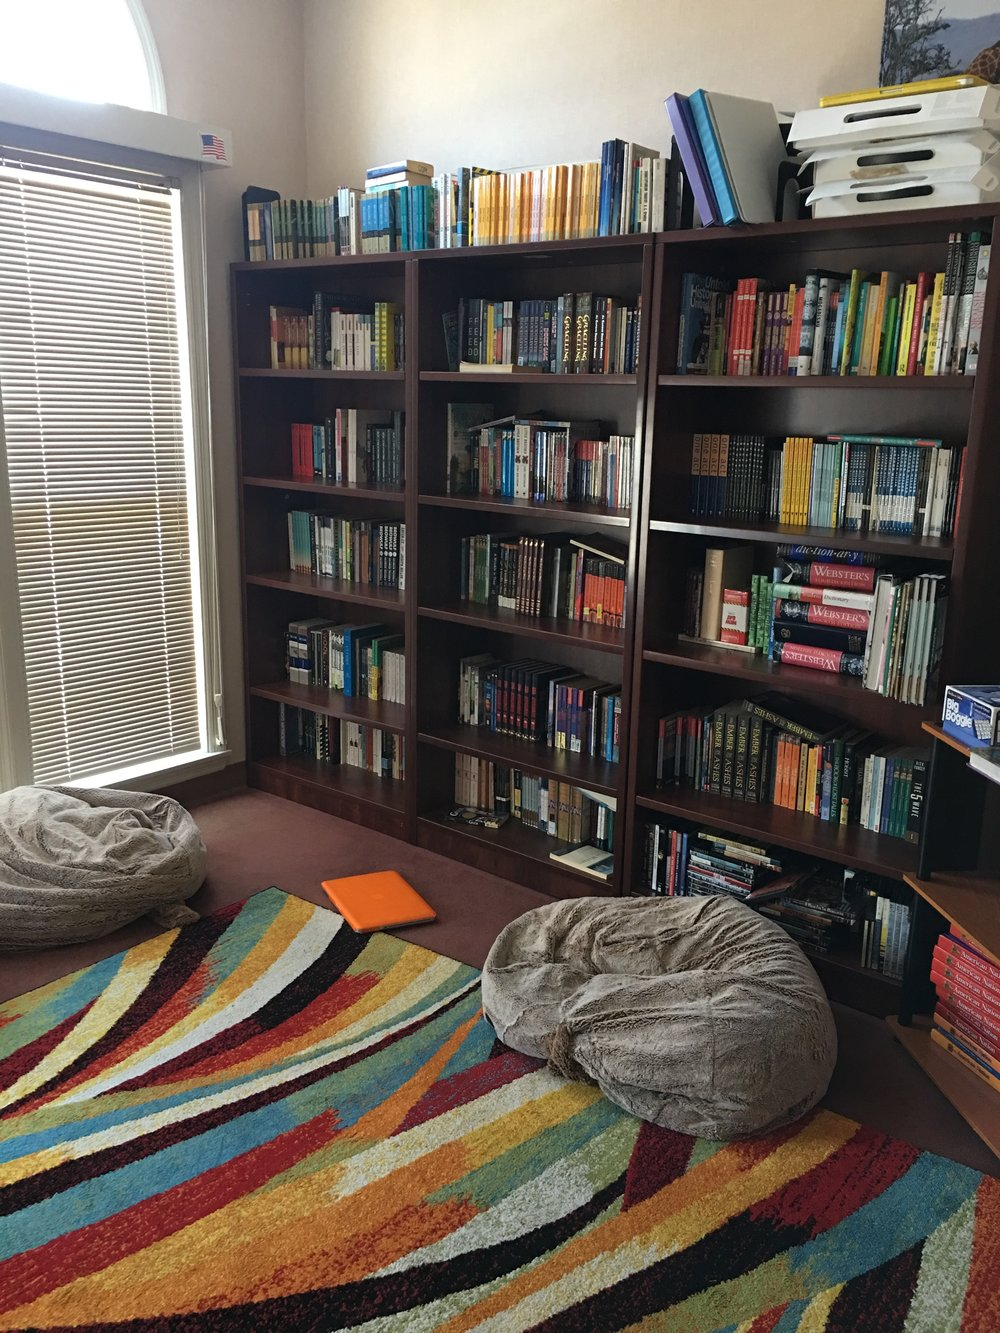 A quiet reading room for students. Photo by Ilene B. Miller